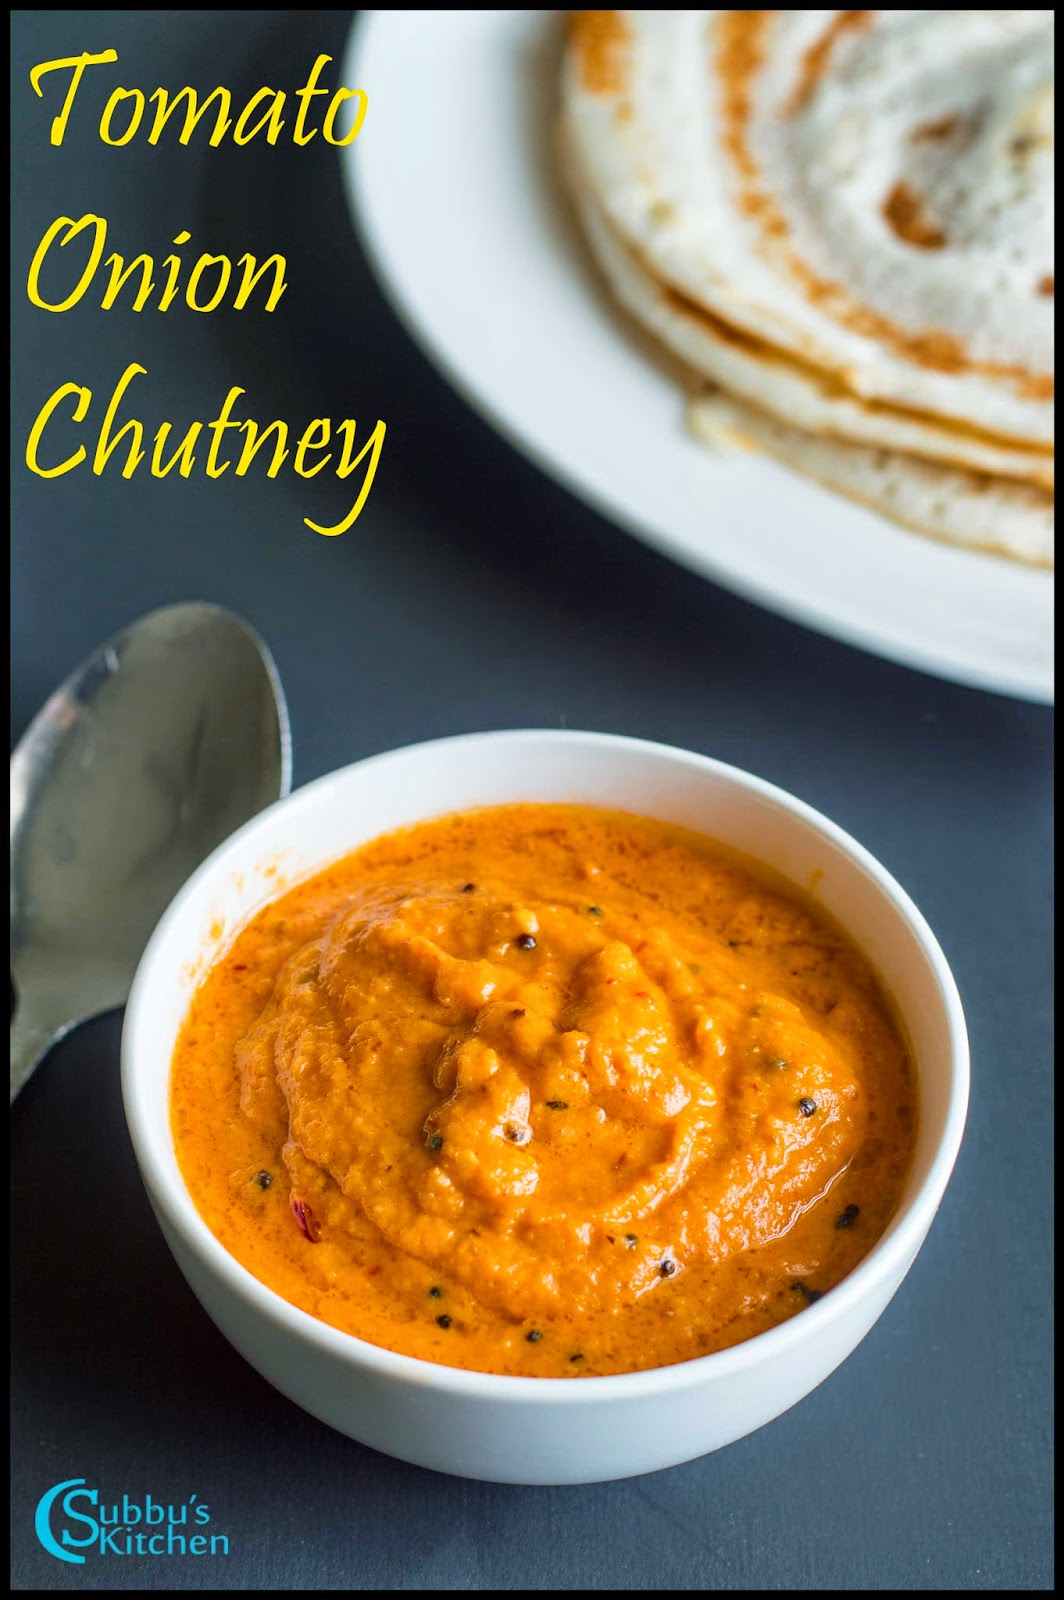 Tomato Onion Chutney - Subbus Kitchen